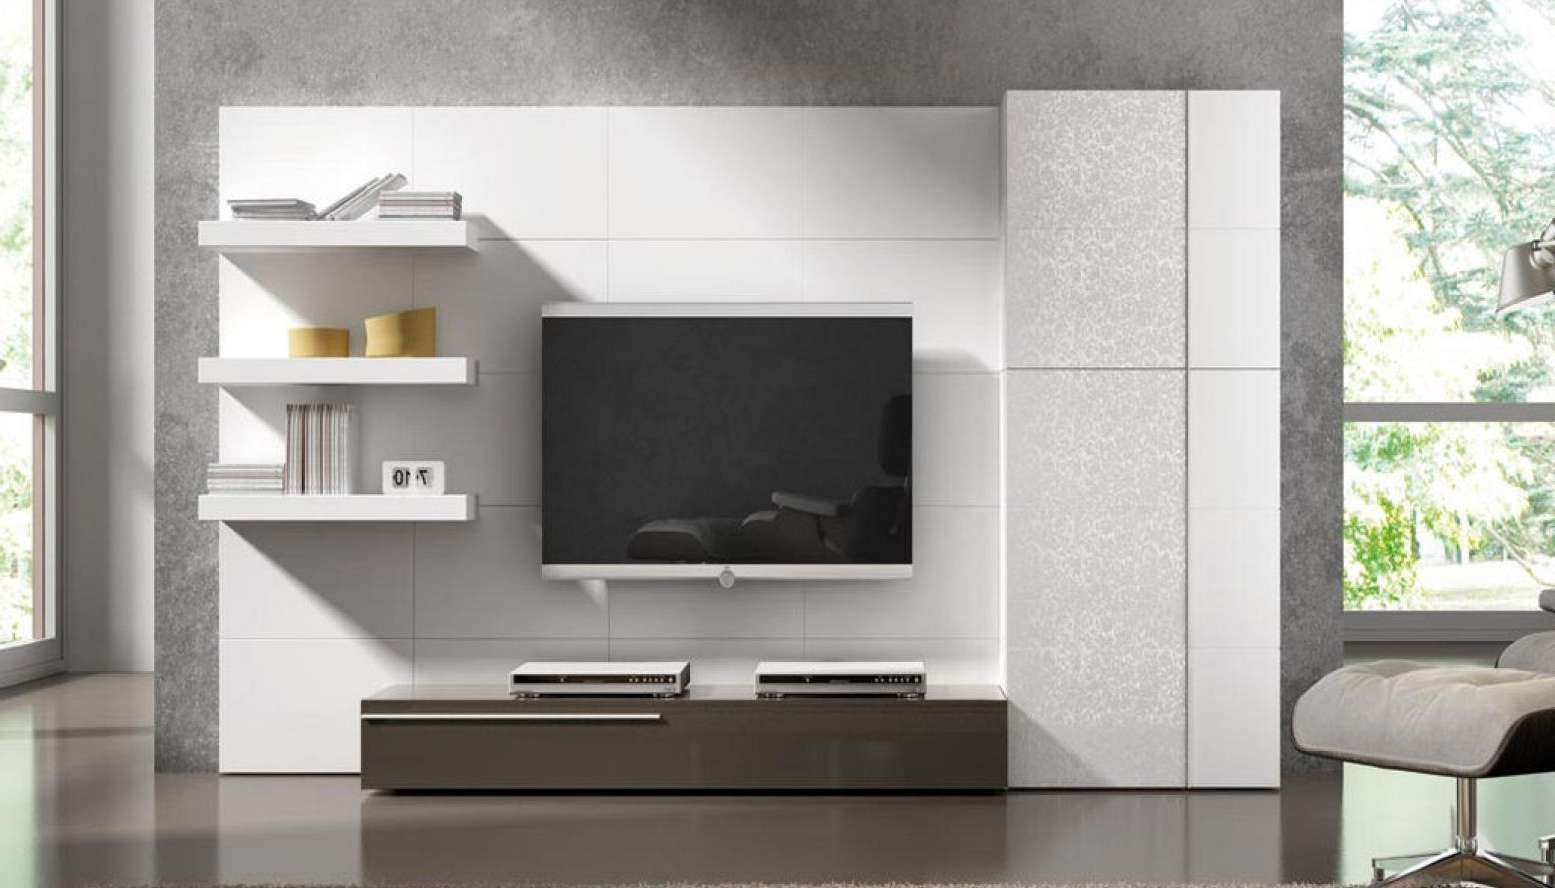 Tv : Stunning Classy Tv Stands Contemporary High Gloss Unico Wall With Regard To Classy Tv Stands (View 3 of 20)